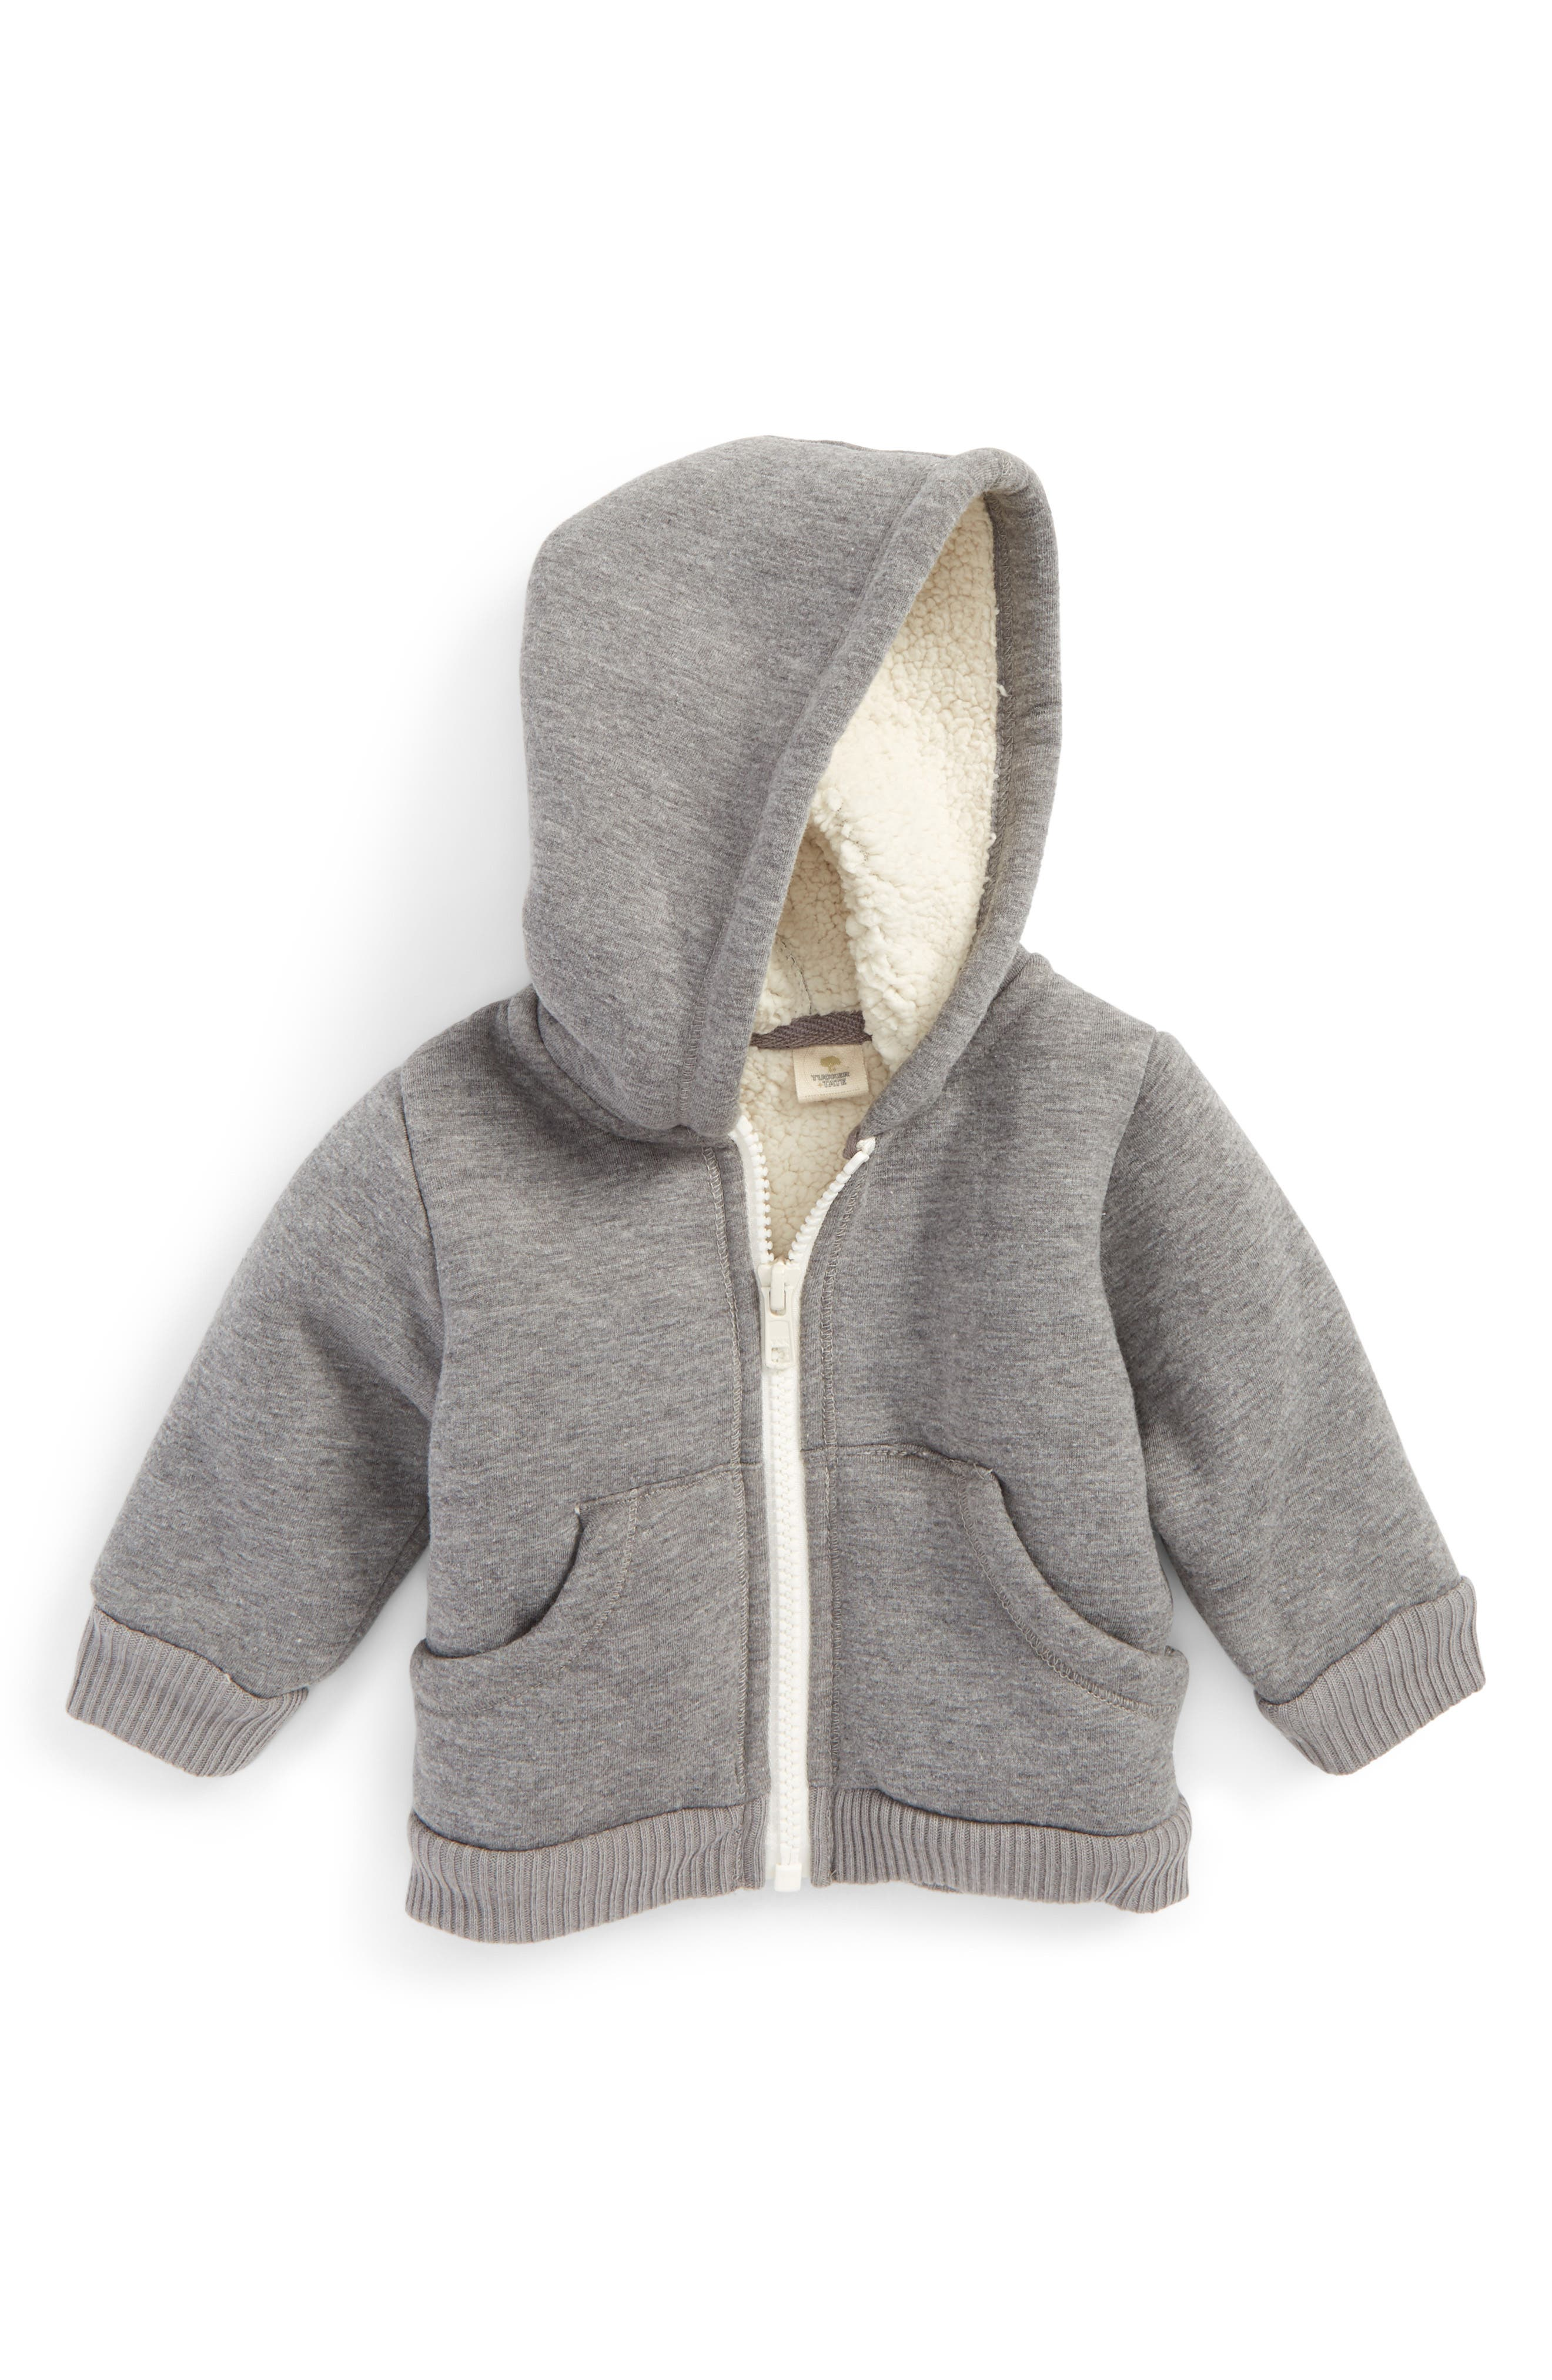 Alternate Image 1 Selected - Tucker + Tate Fuzzy Lined Jacket (Baby)